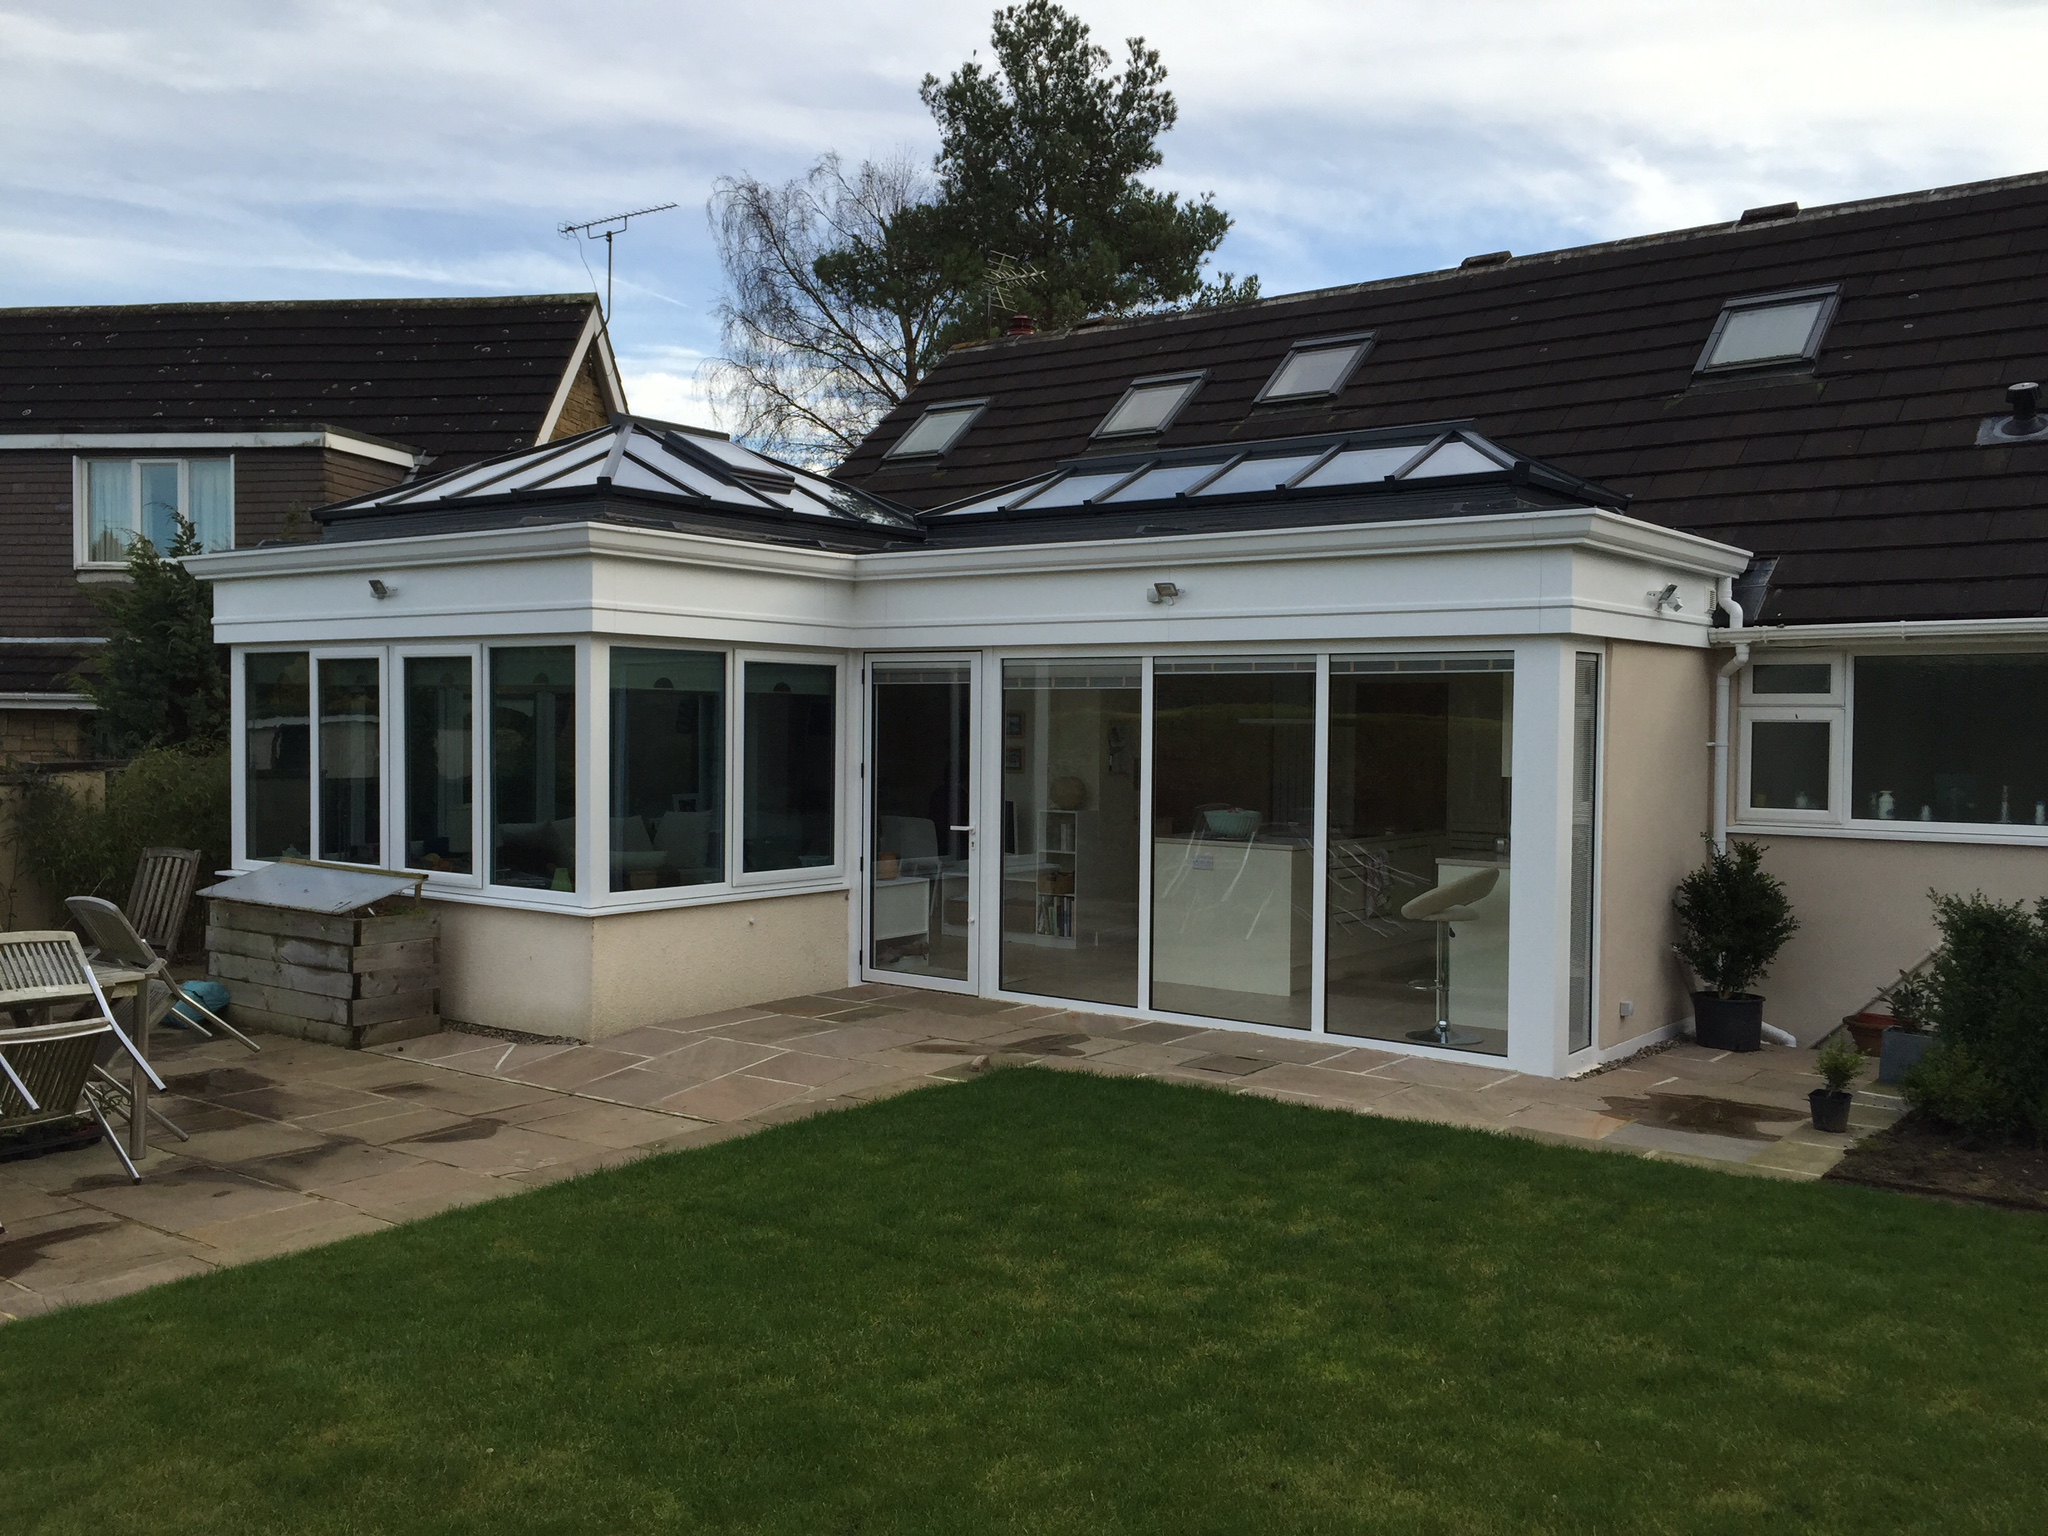 Kitchen Extension in Orangery - external view